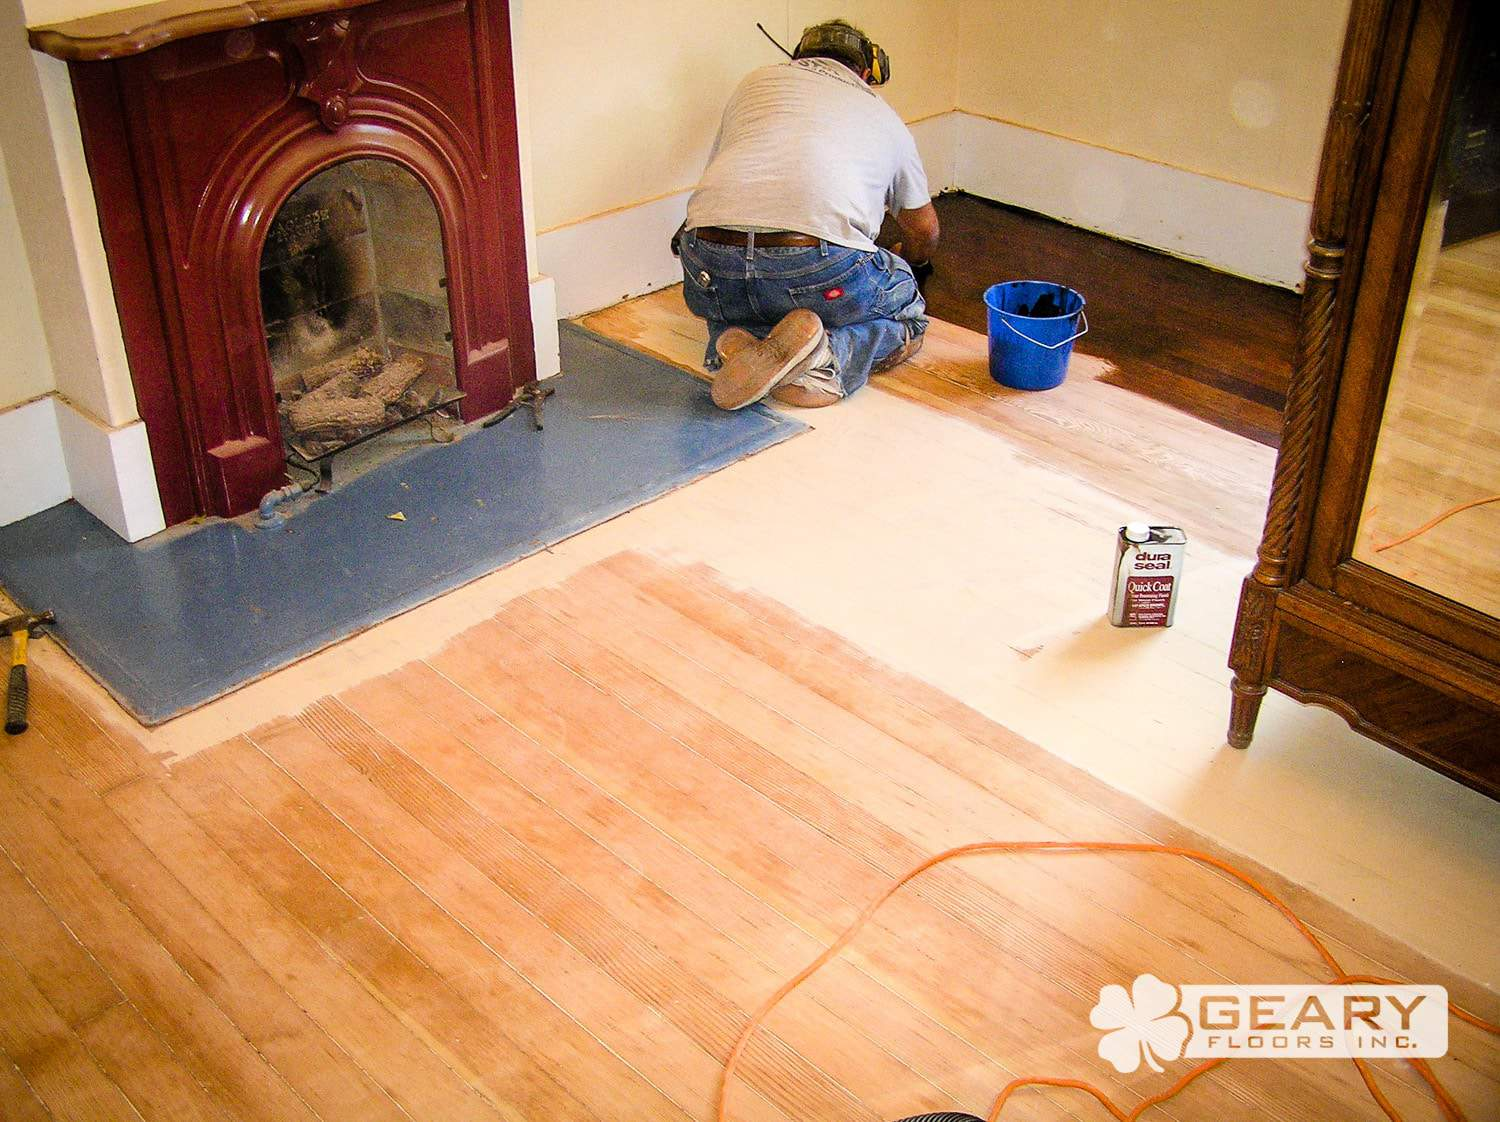 Geary Flooring Sand and Finish Residential Flooring 244 - Residential Flooring - Hardwood Flooring San Diego